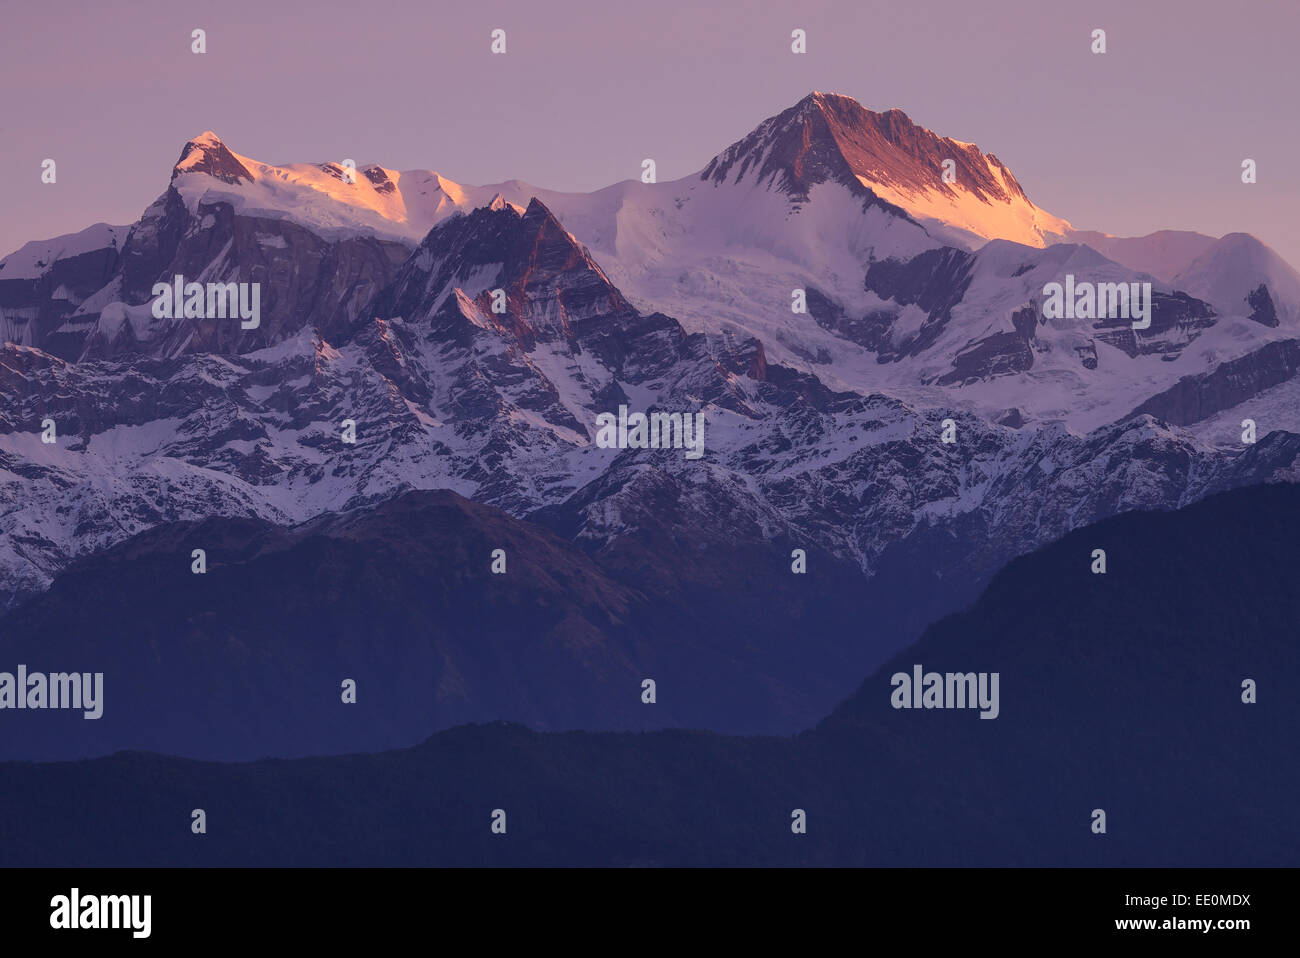 Sunrise over Annapurna II of the Annapurna range in the Himalayas - Stock Image